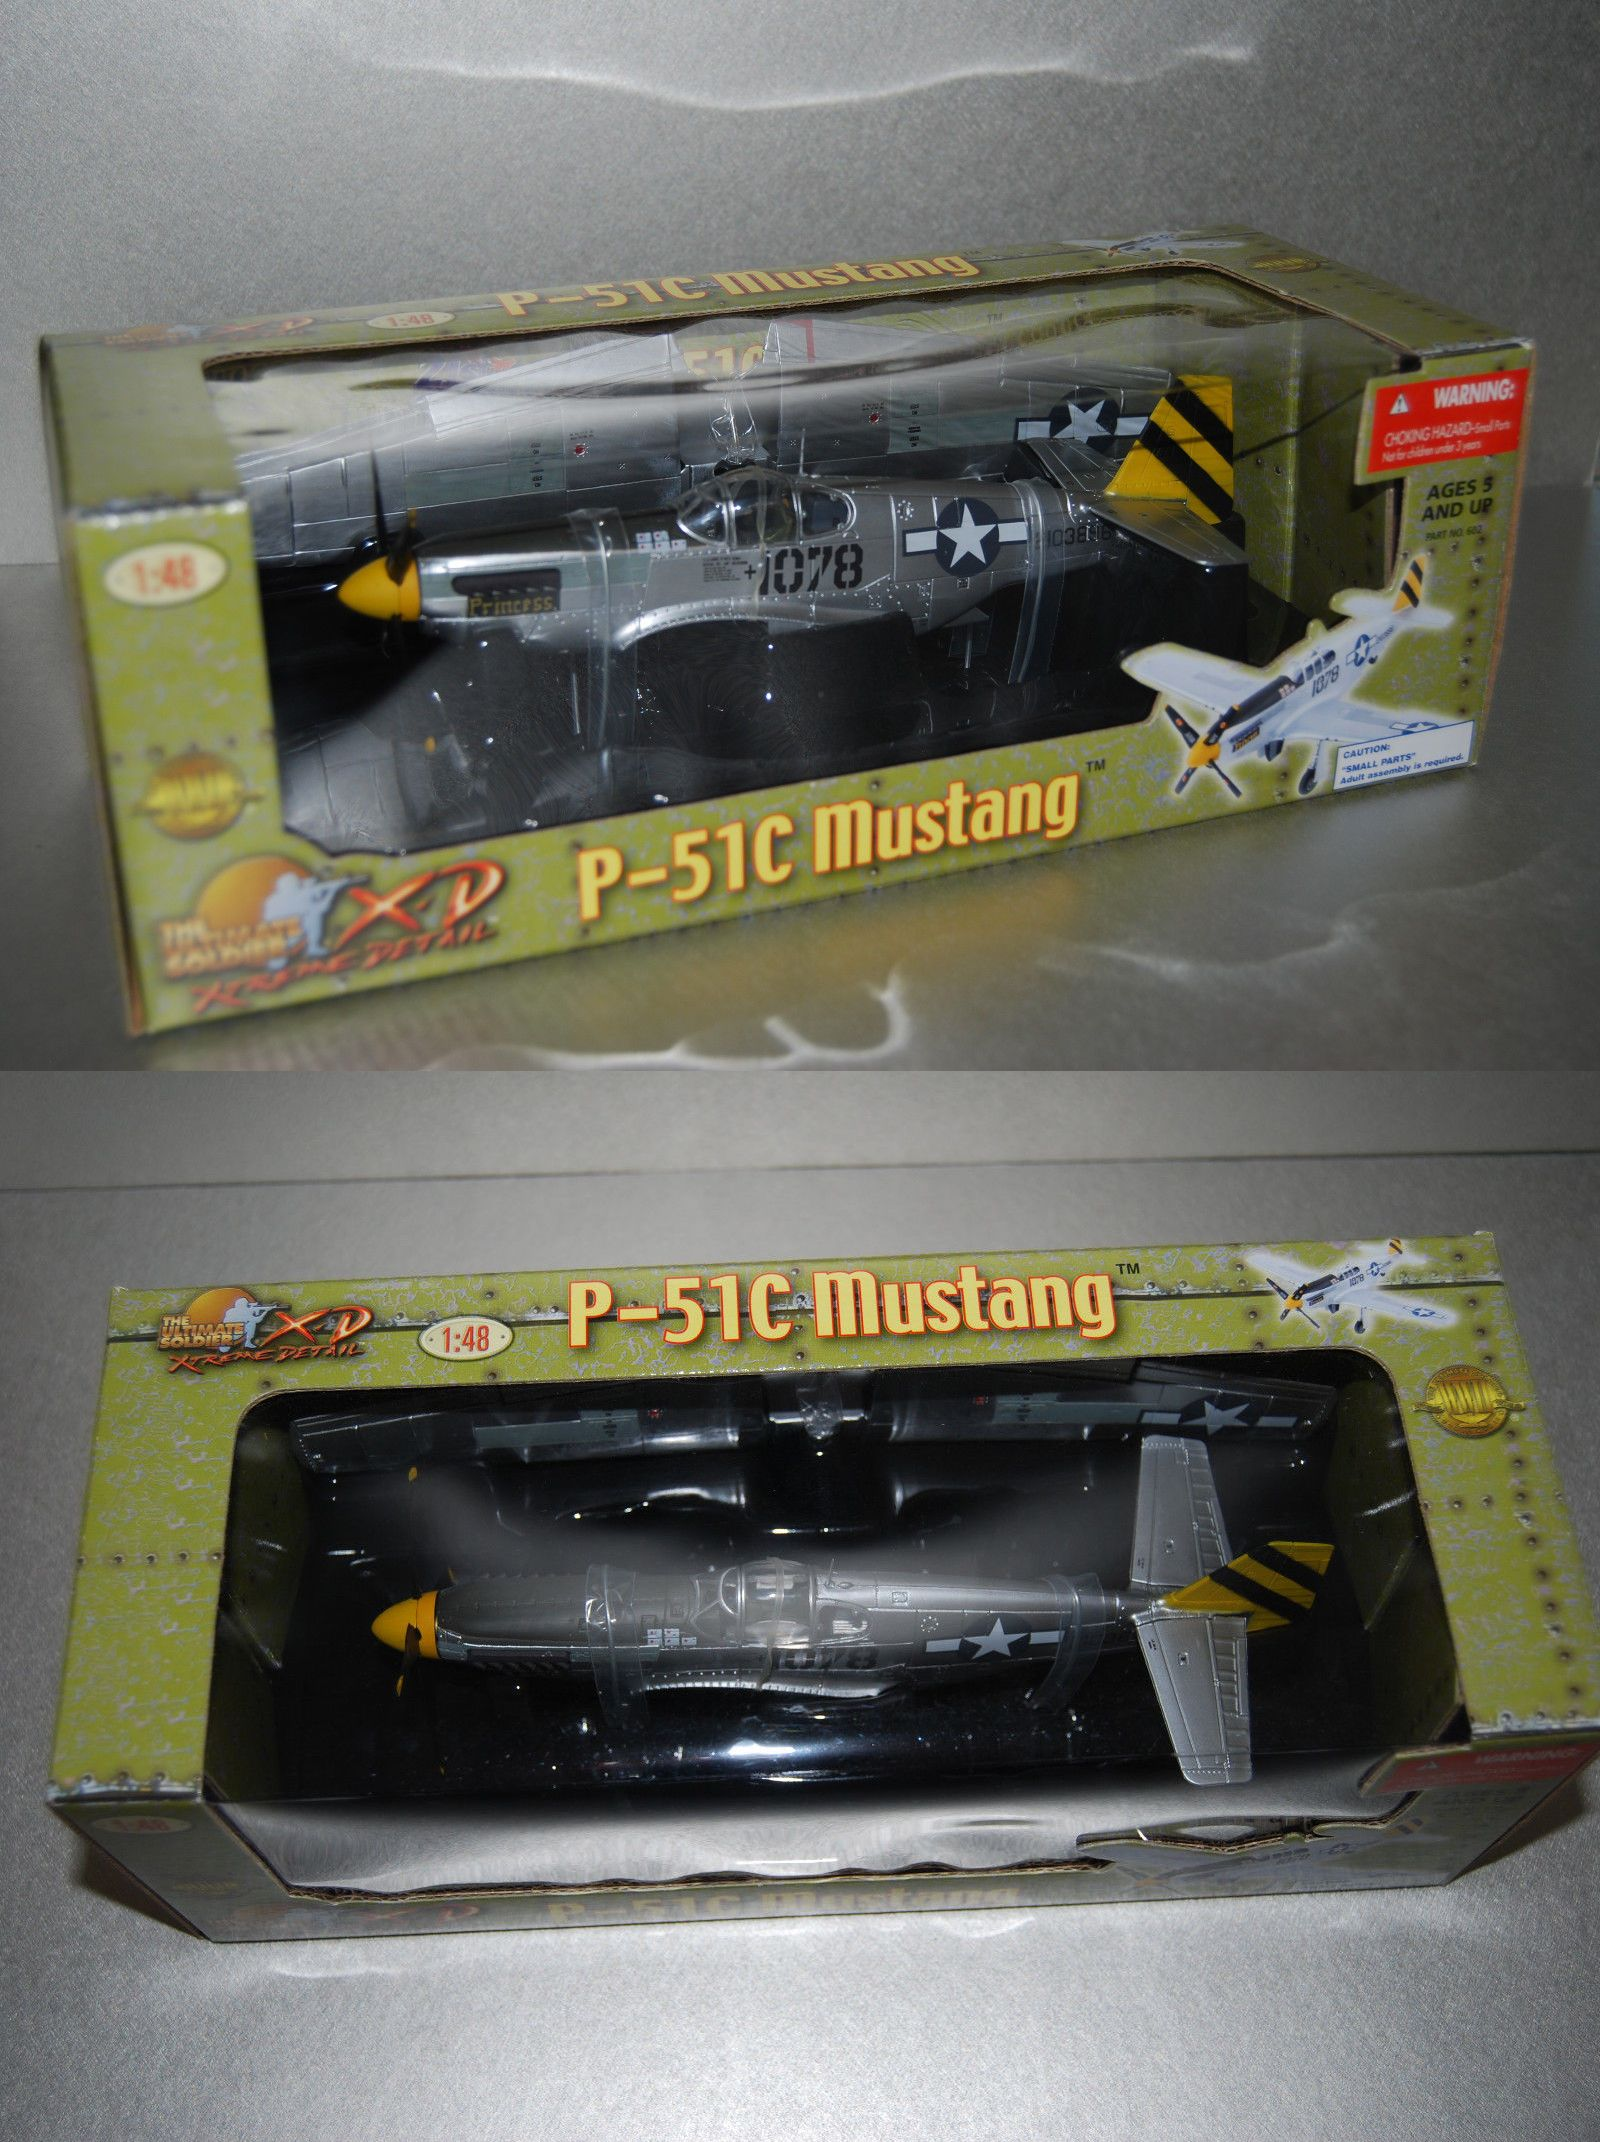 Other Military Aircraft Models 2587: 21St Century Toys Ultimate Soldier 1  48 P-51C Mustang Princess Sealed! -> BUY IT NOW ONLY: $44.99 on #eBay  #other ...